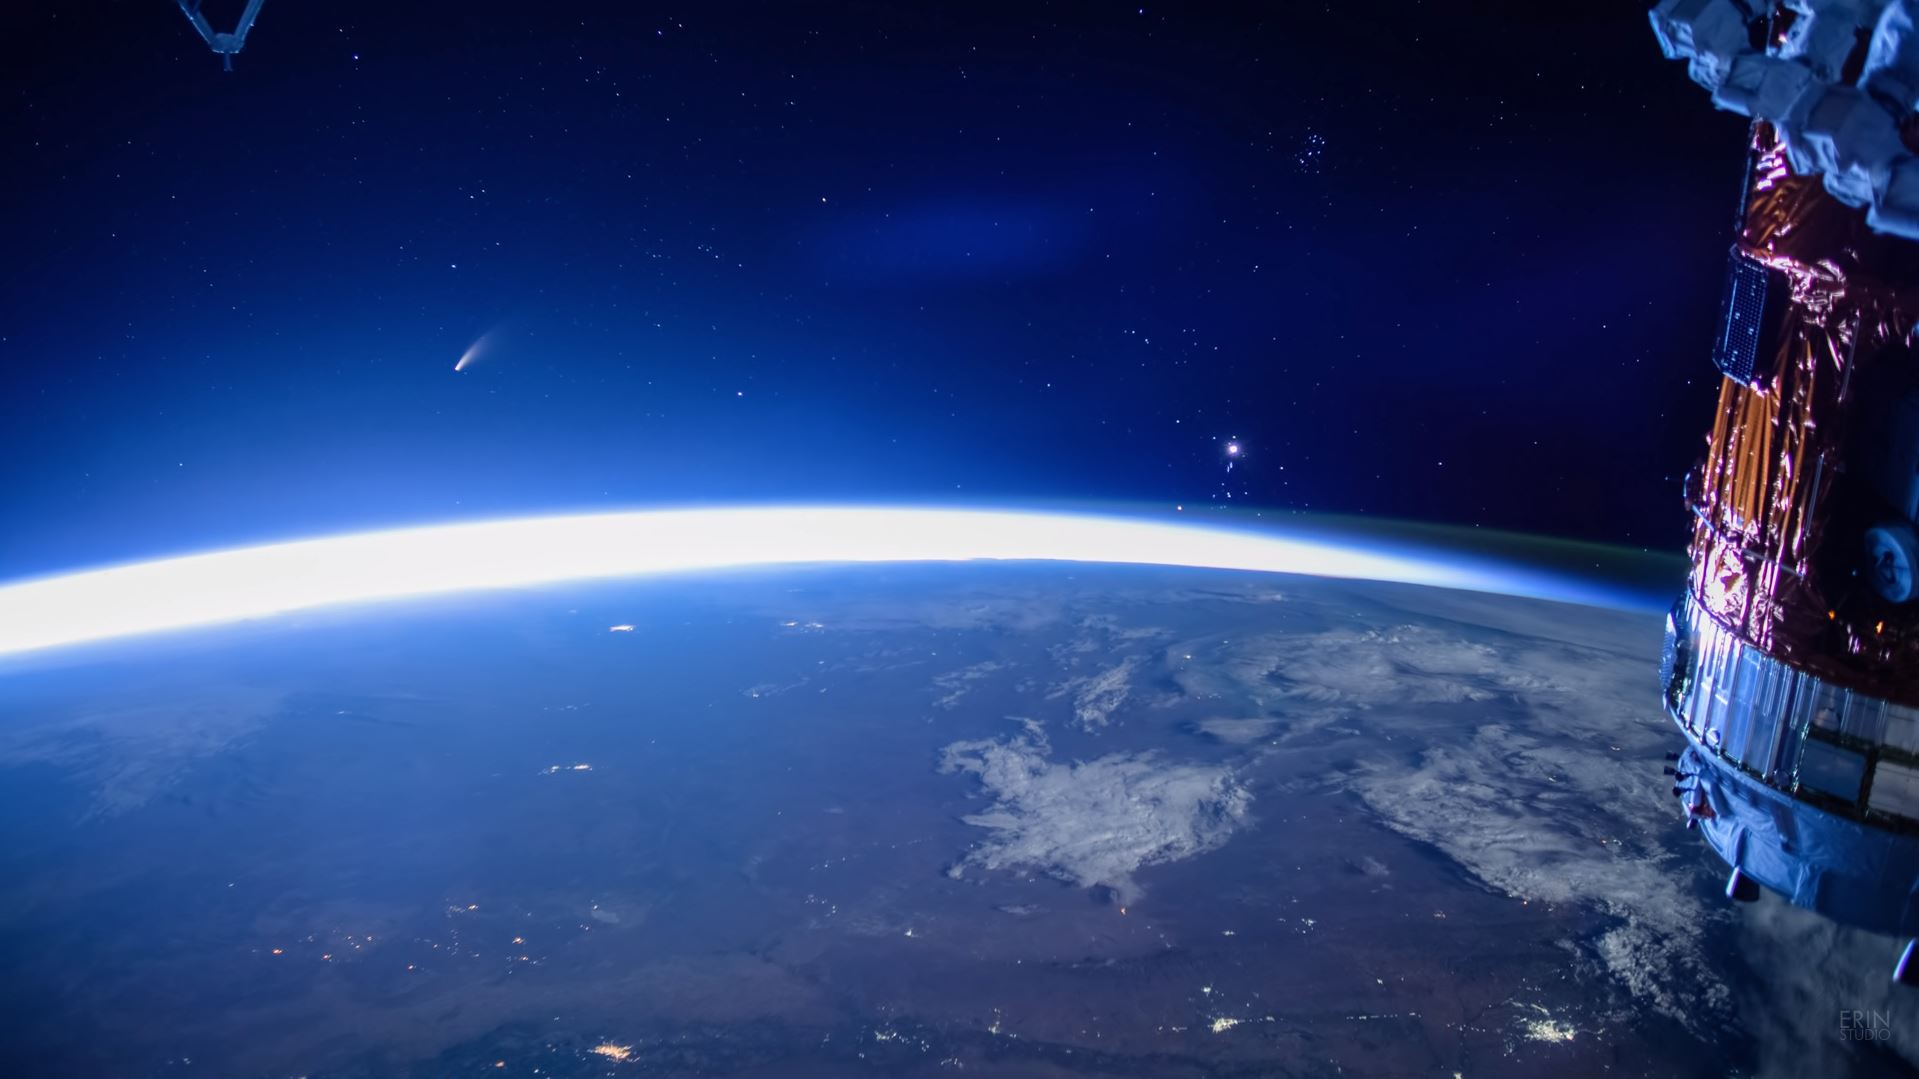 Watch Comet NEOWISE from space in stunning 4K VIDEO 32